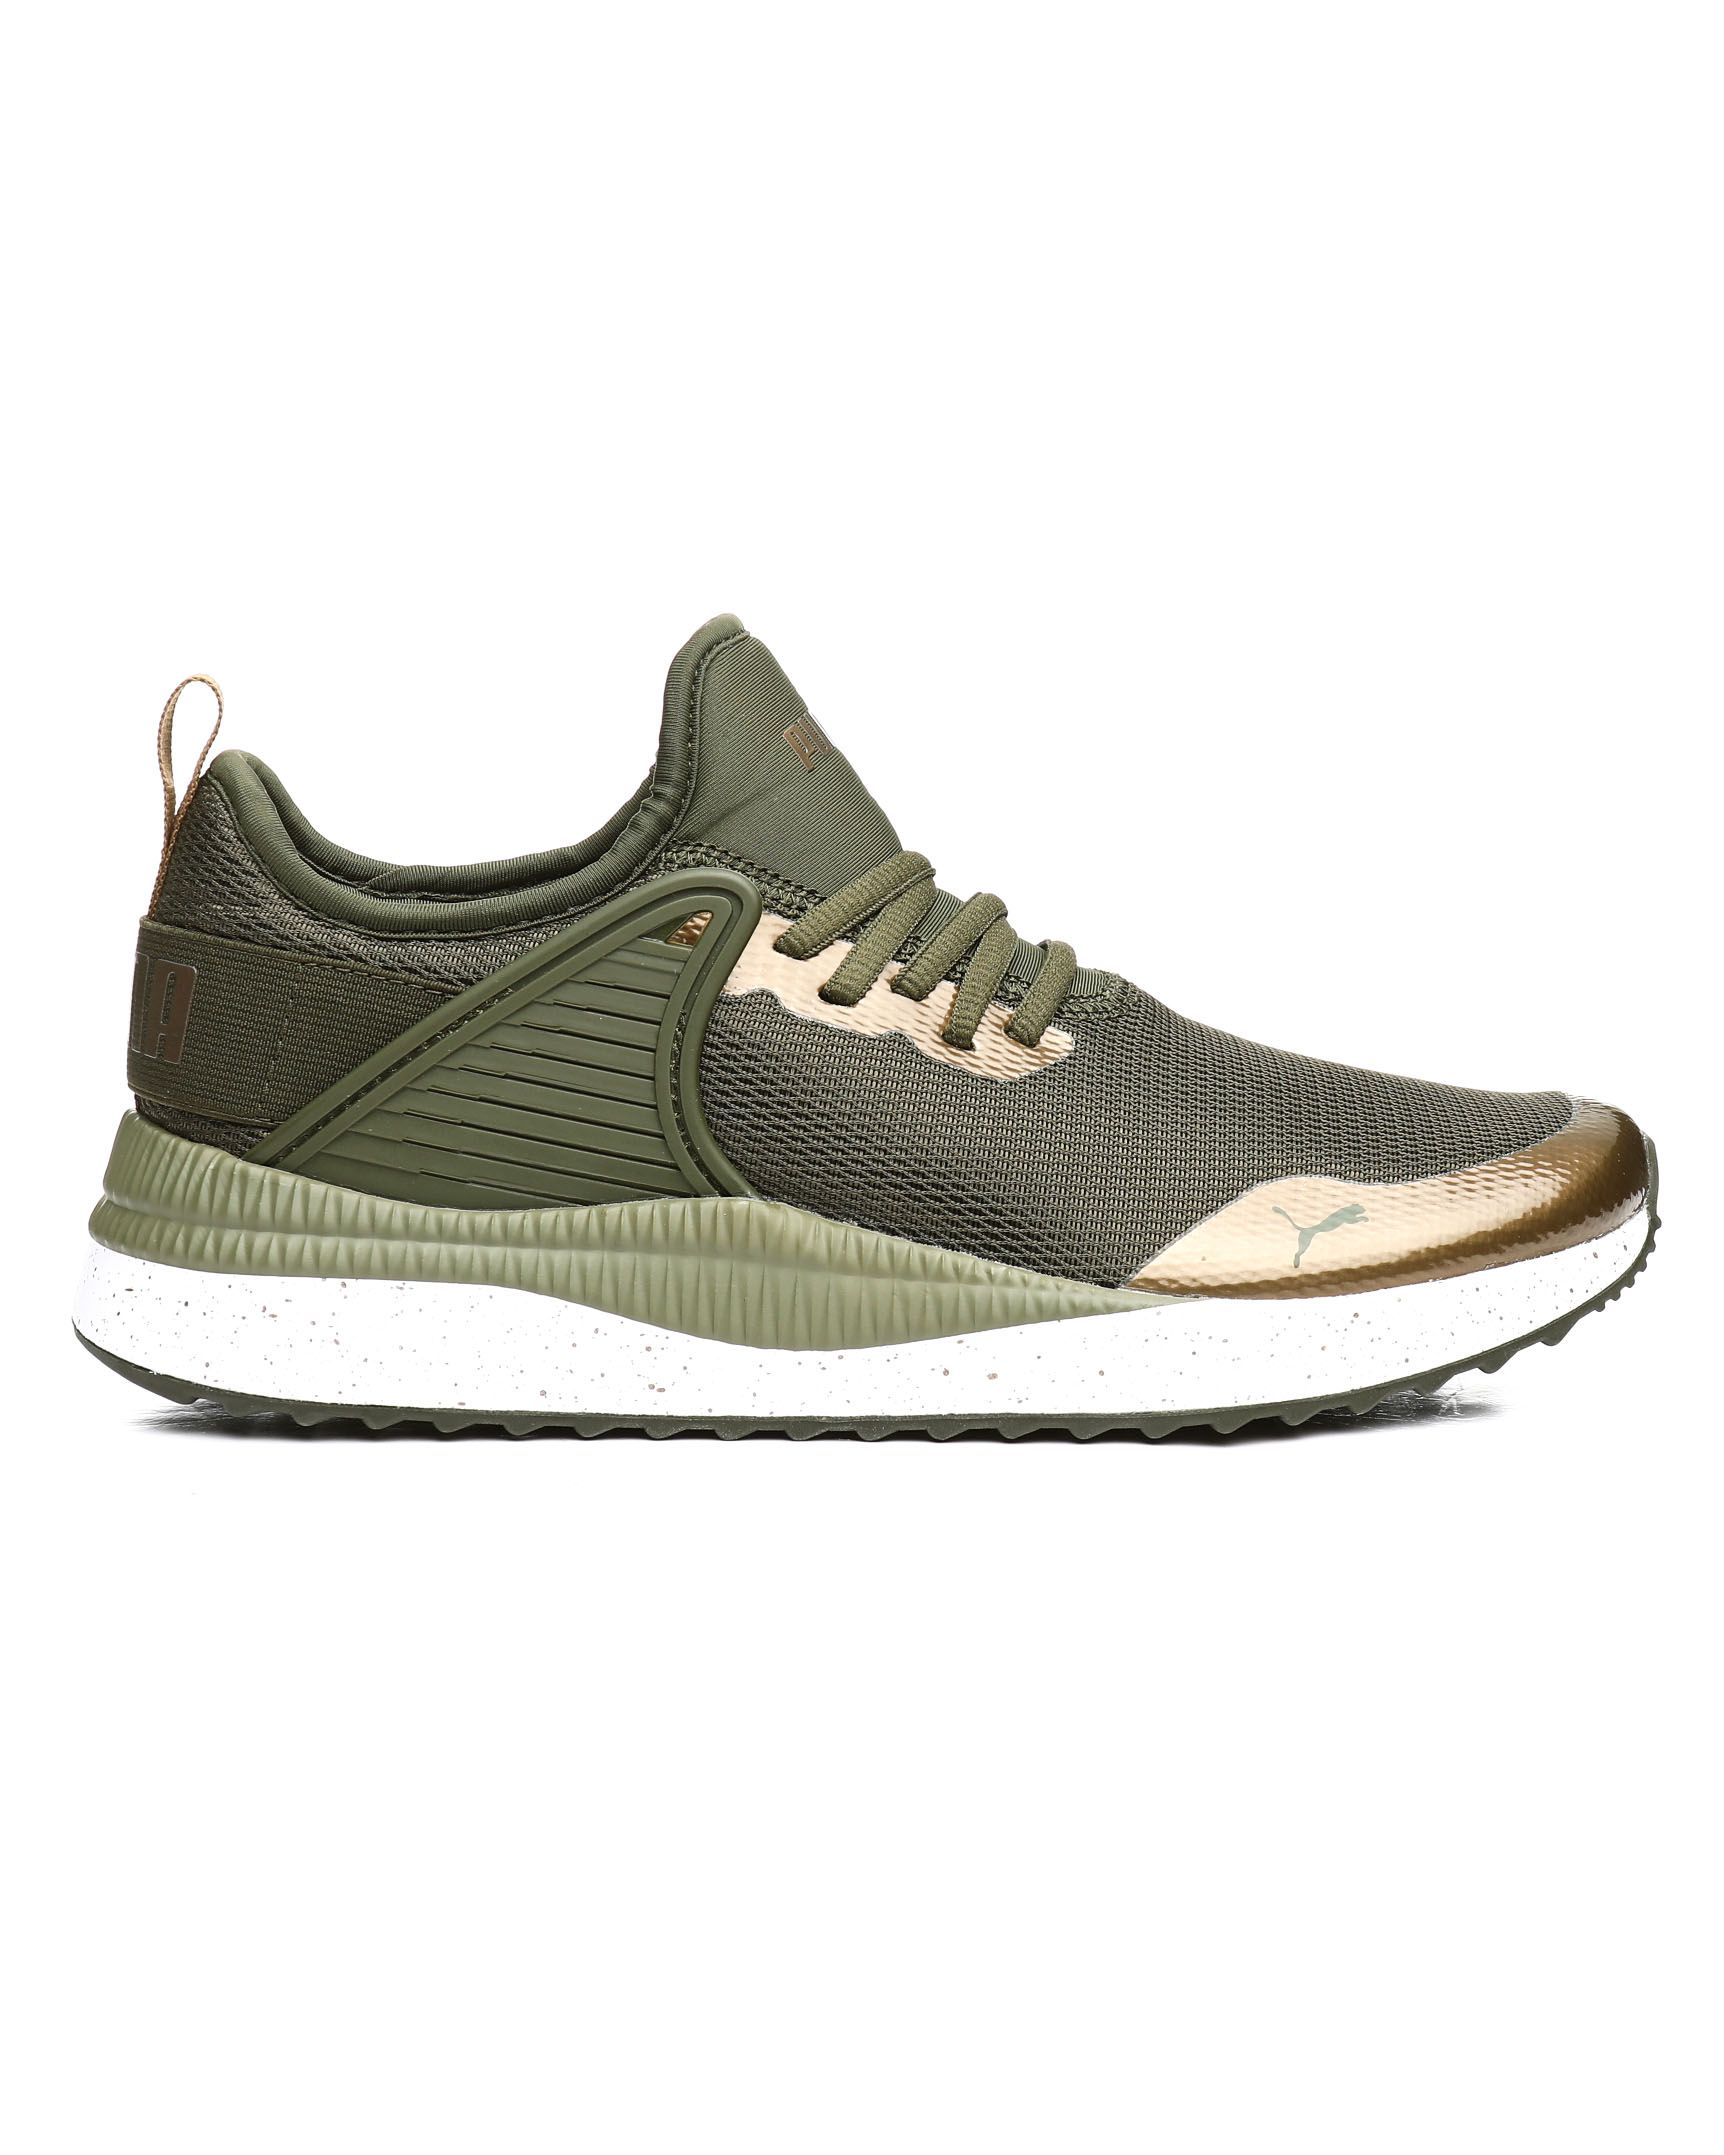 02ec99b7cc71 Pacer Next Cage Metallic Speckle Sneakers from Puma at DrJays.com ...